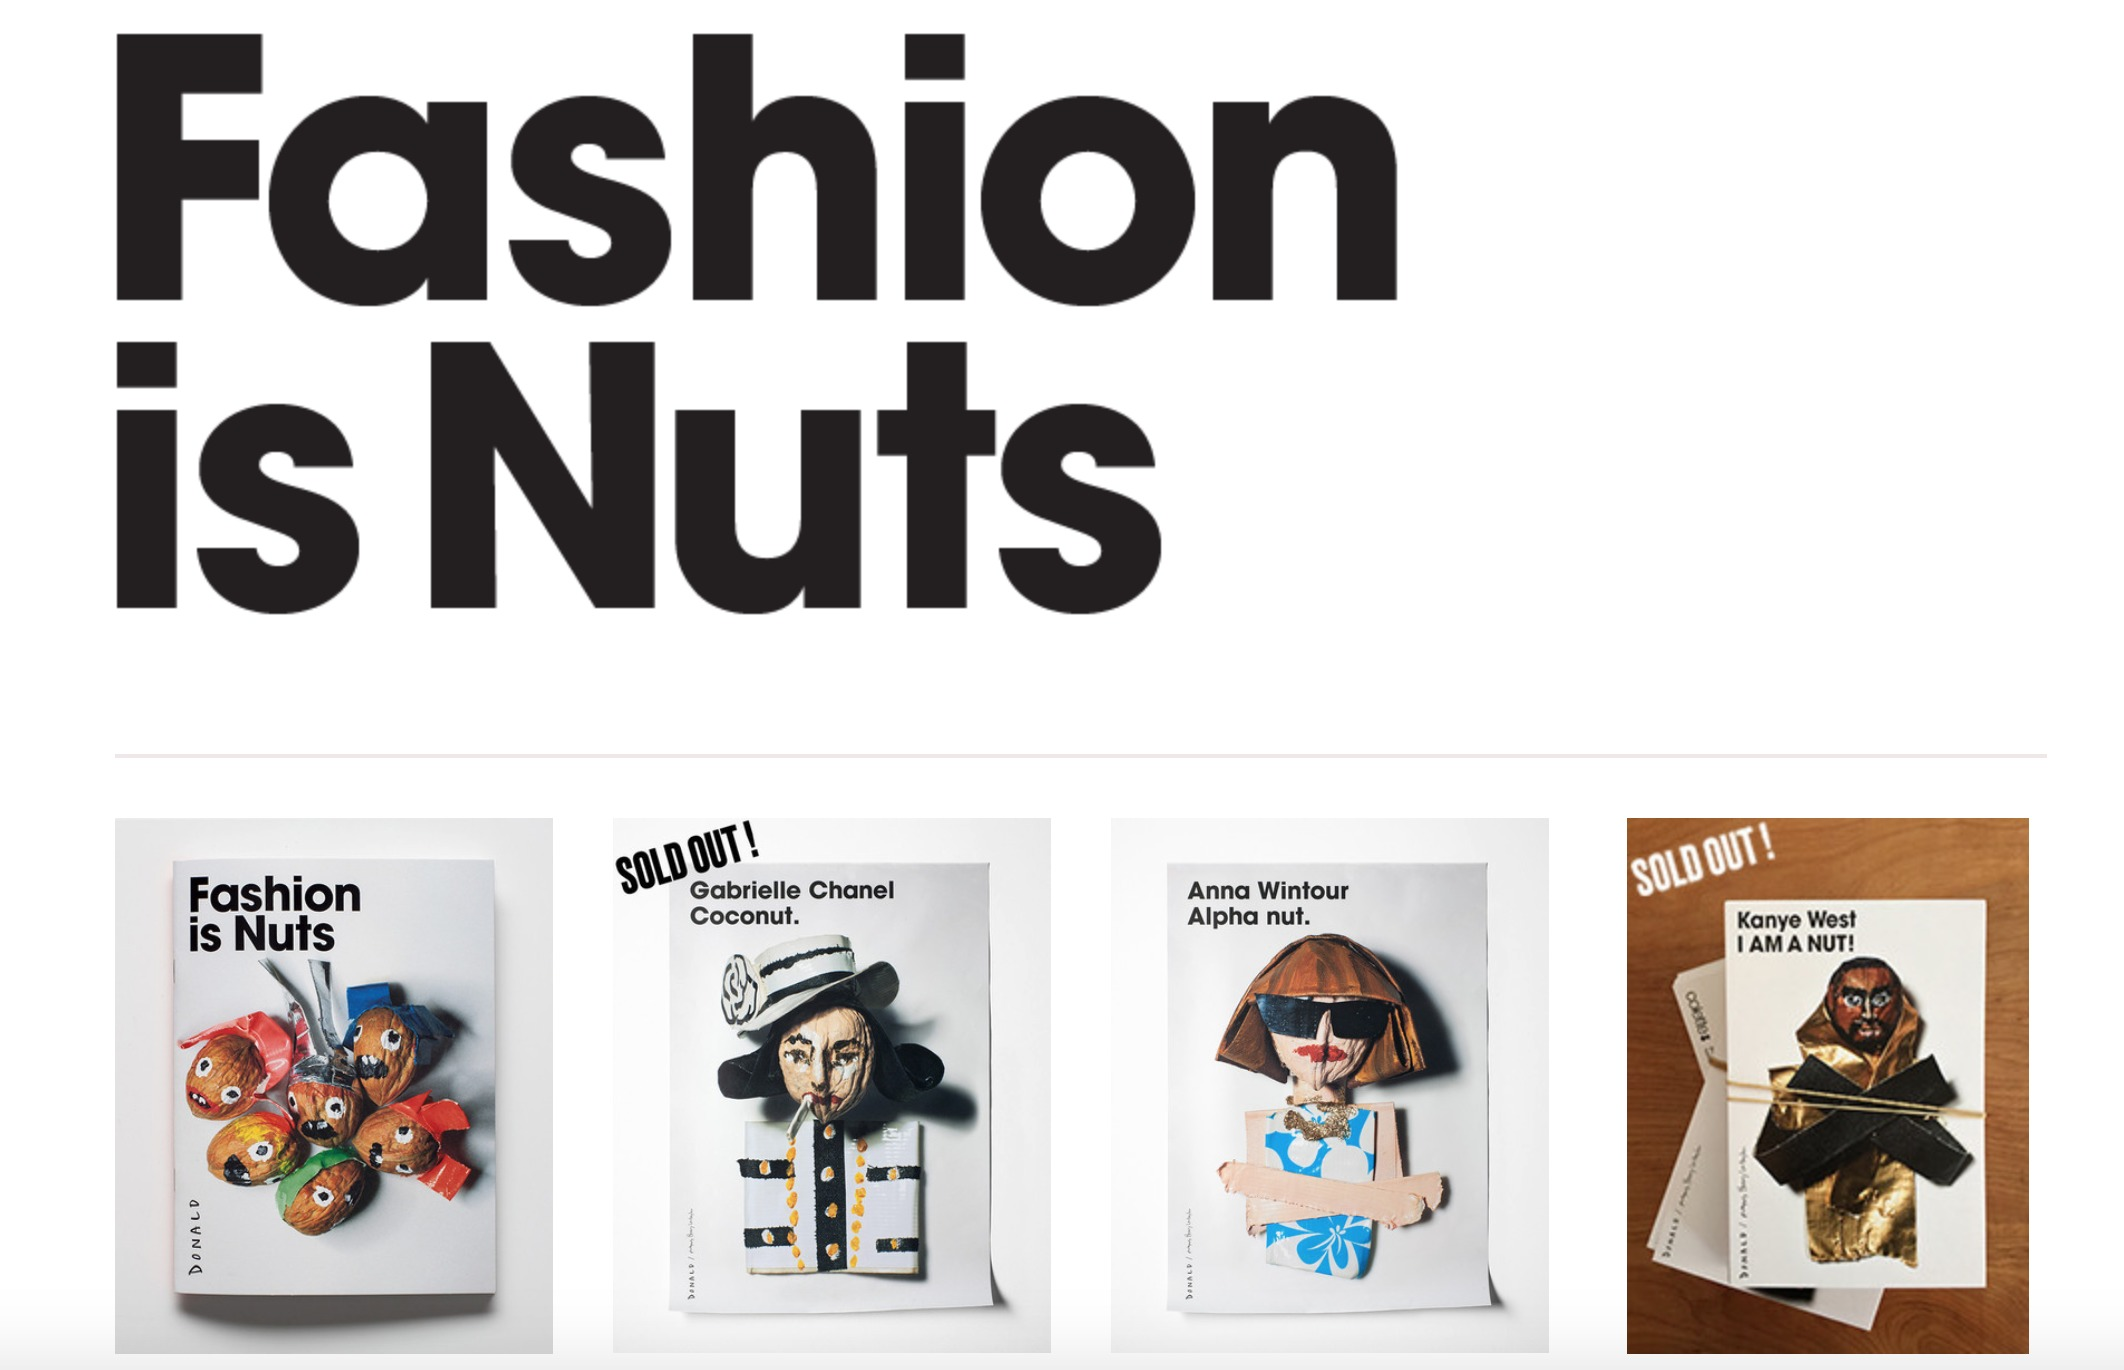 captured from fashionisnuts.com/© FASHION IS NUTS